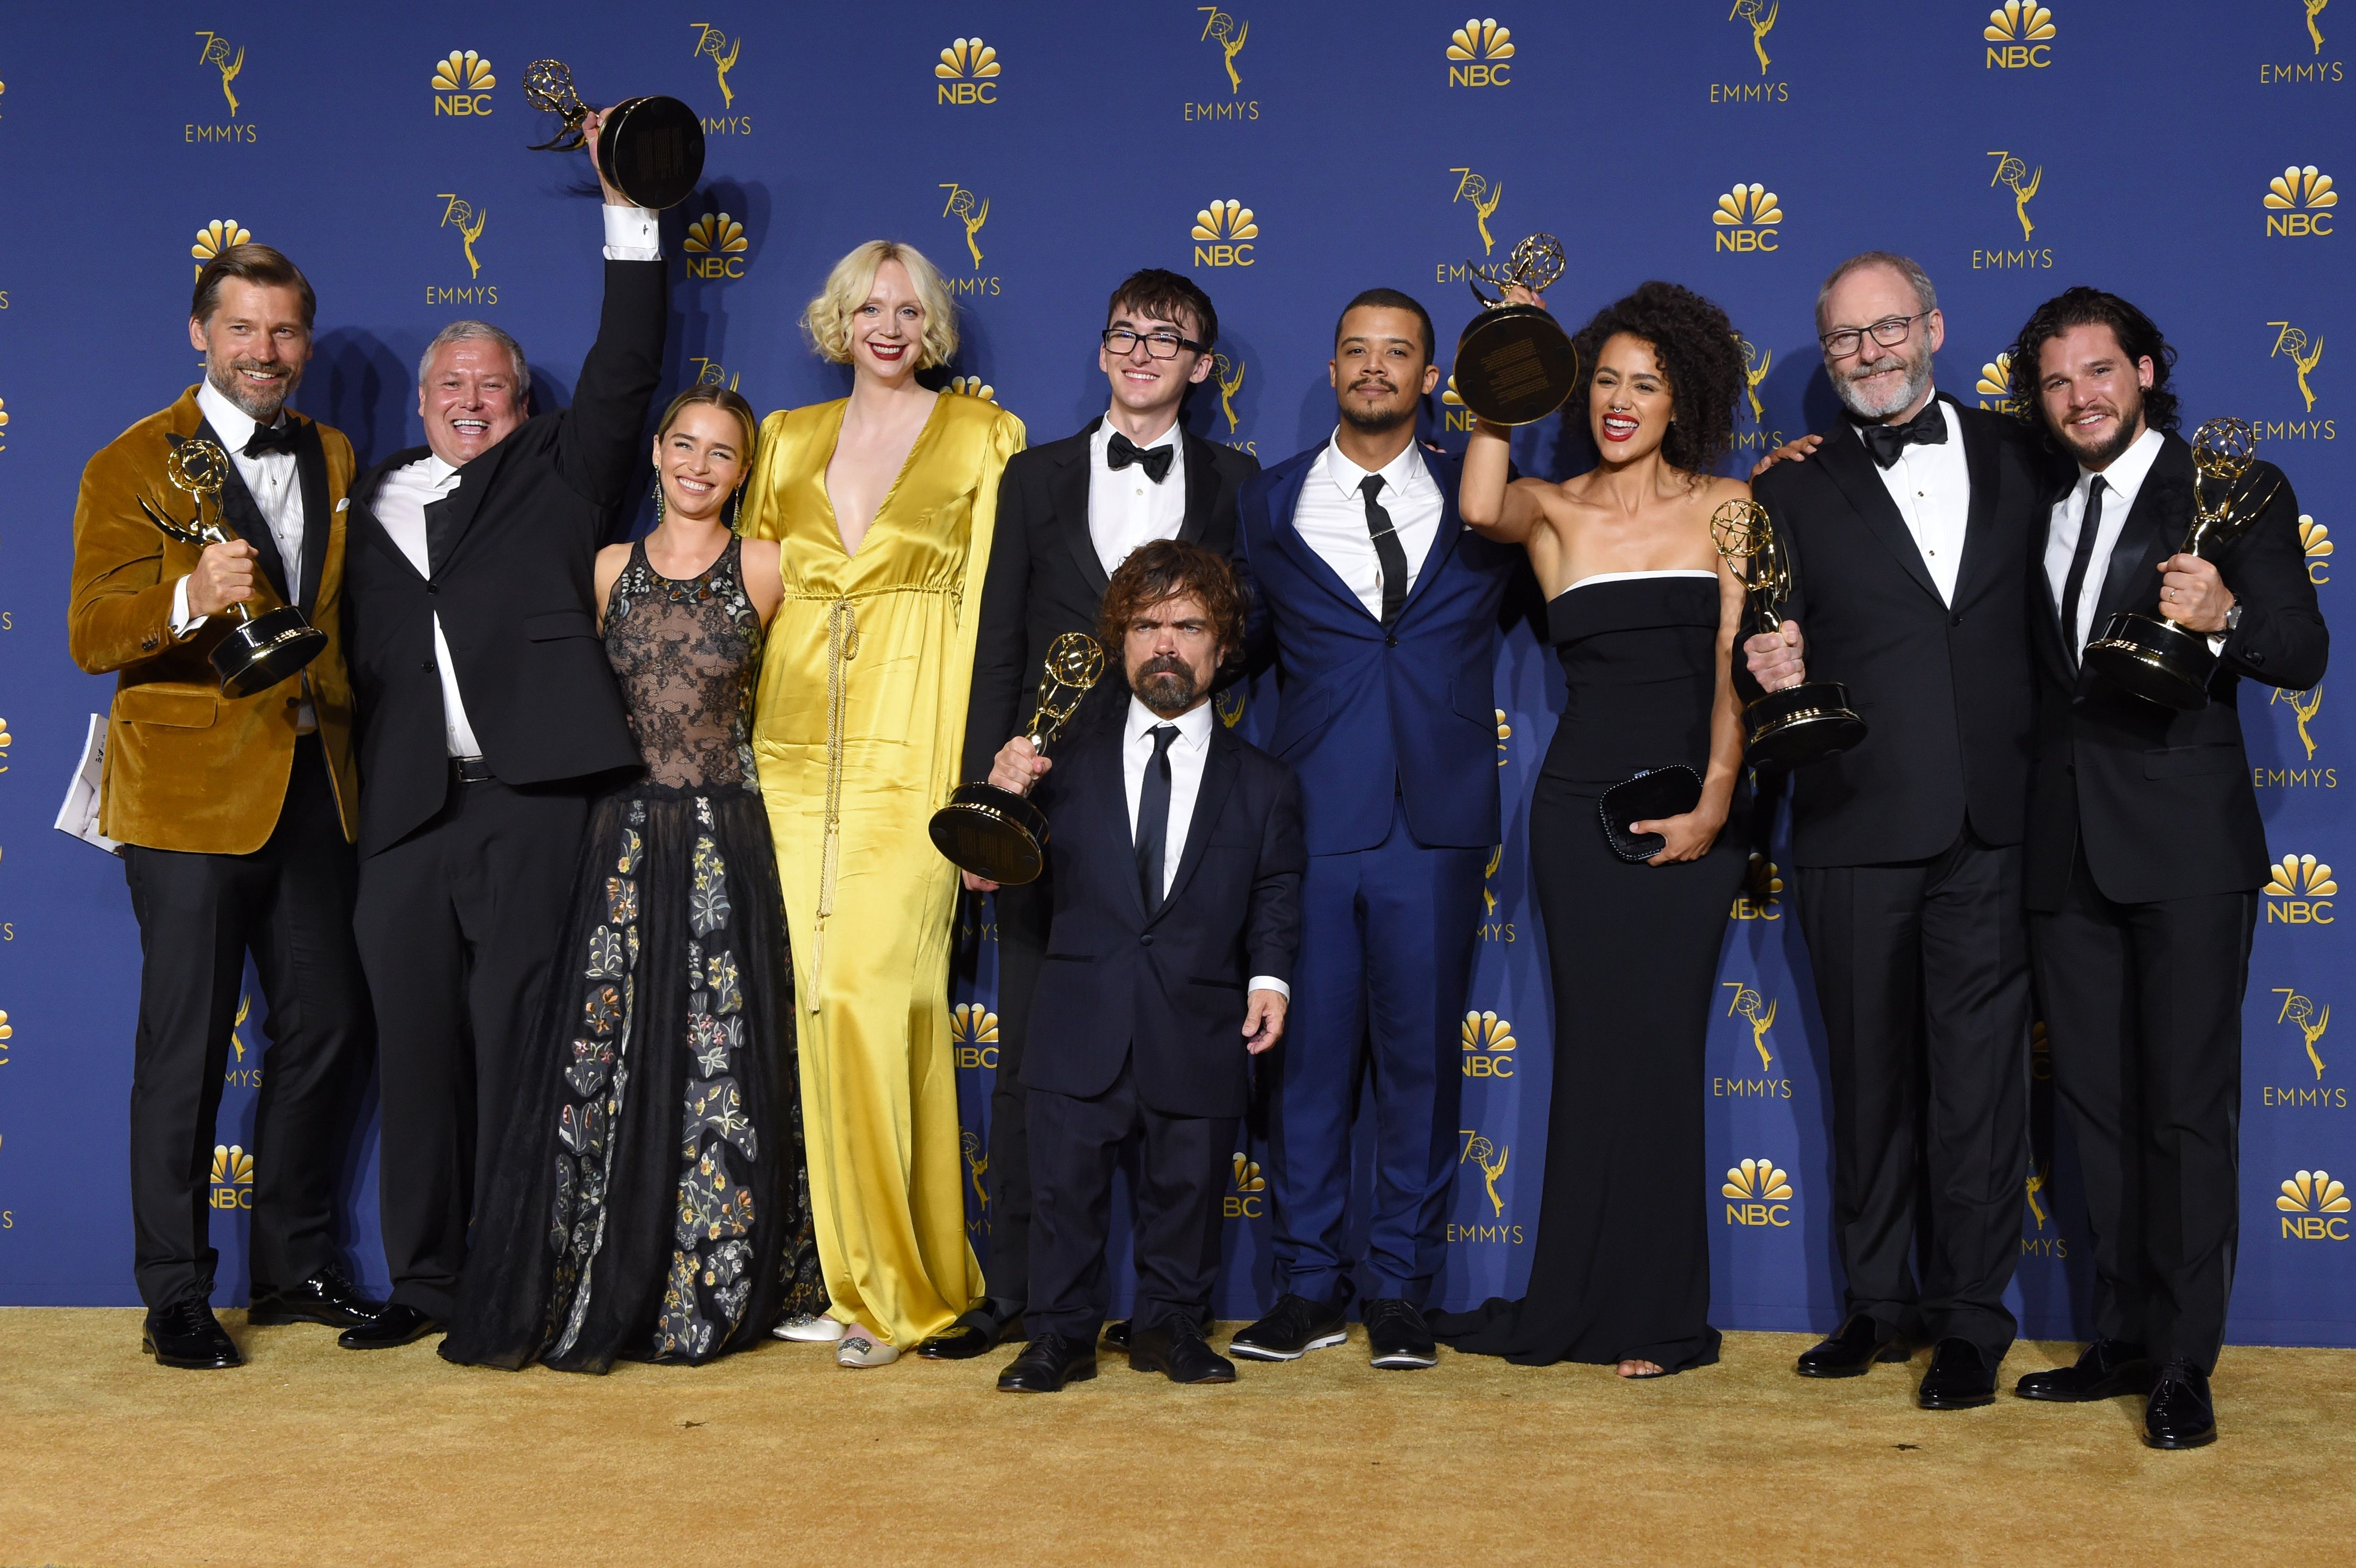 2019 Emmy Awards: How To Watch the 71st Primetime Emmys